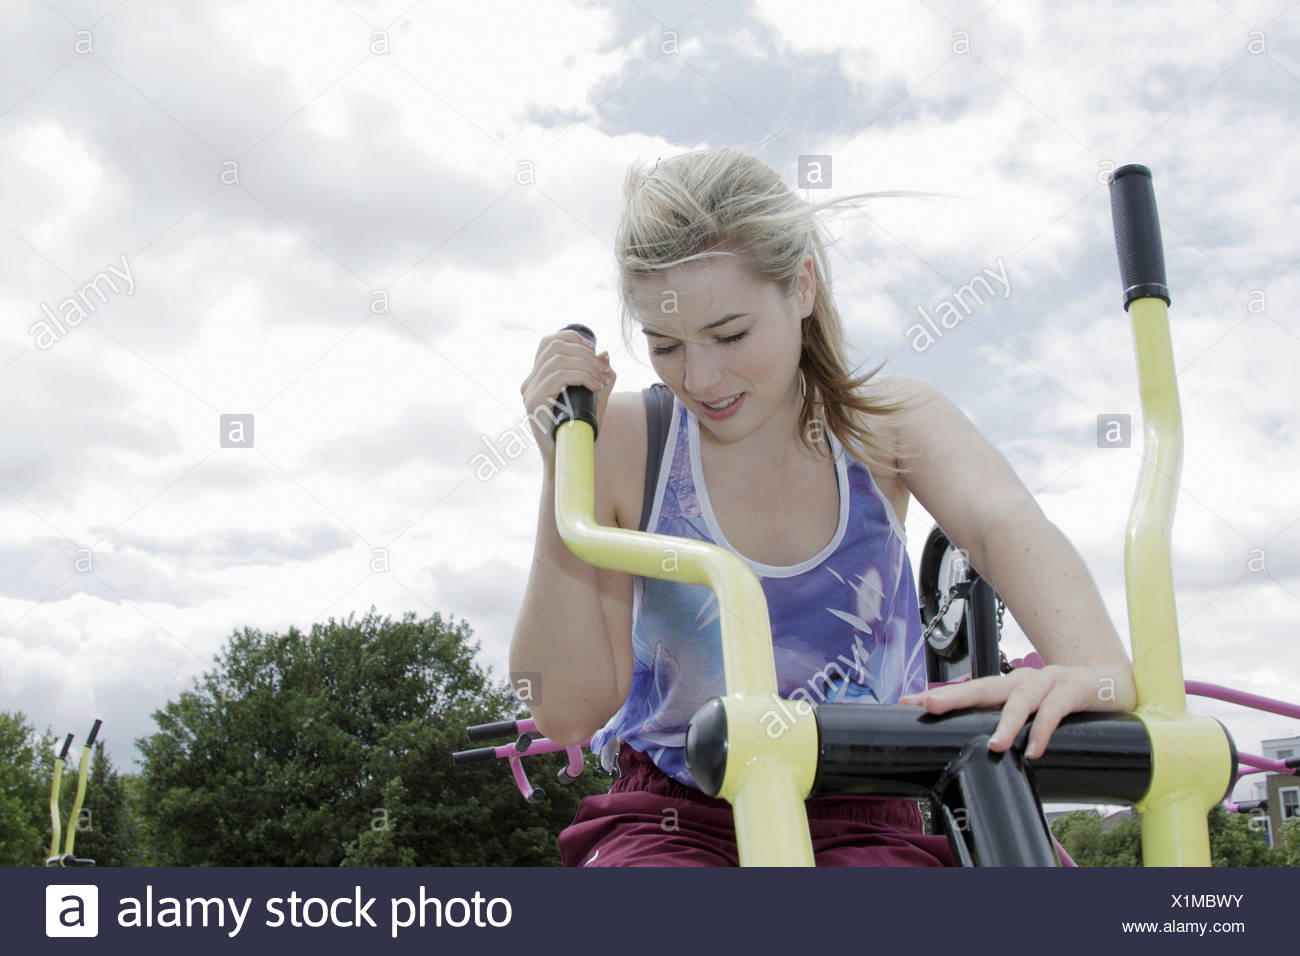 Woman using exercise machine outdoors - Stock Image